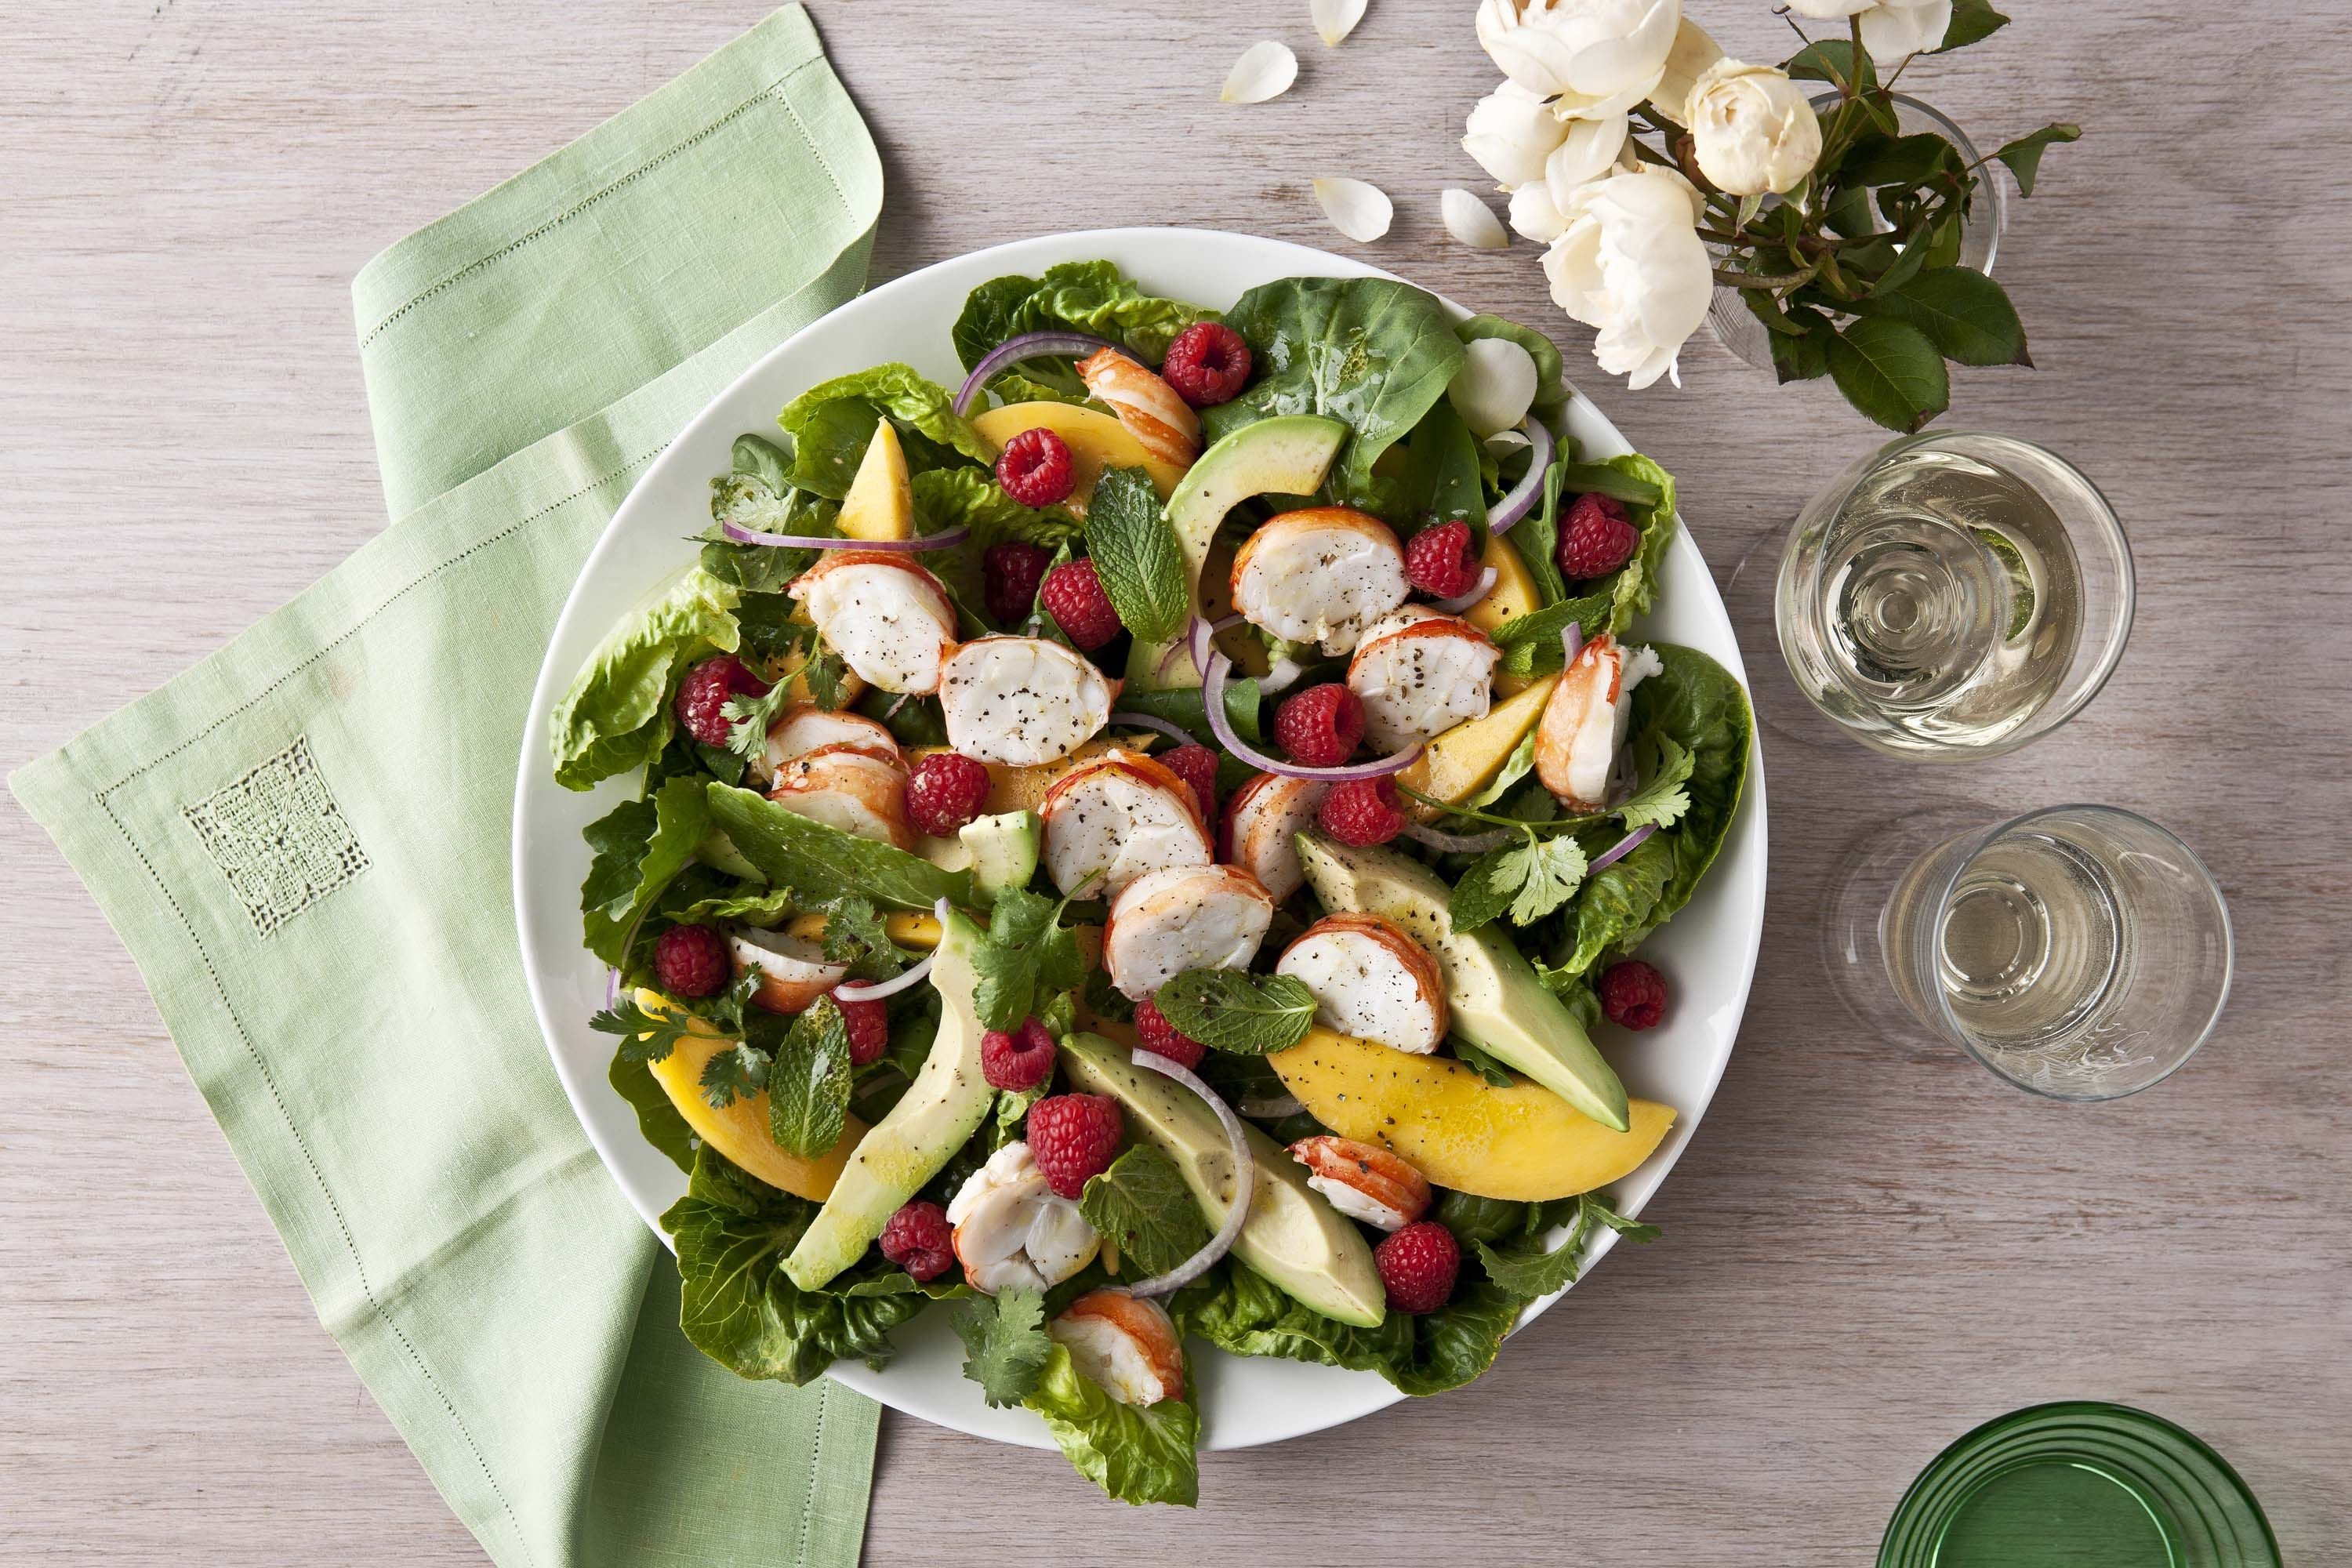 This delightful lobster and summer fruit salad recipe is proudly brought to you by taste.com.au and Houghton Wine. Pair this dish with Houghton Chardonnay.